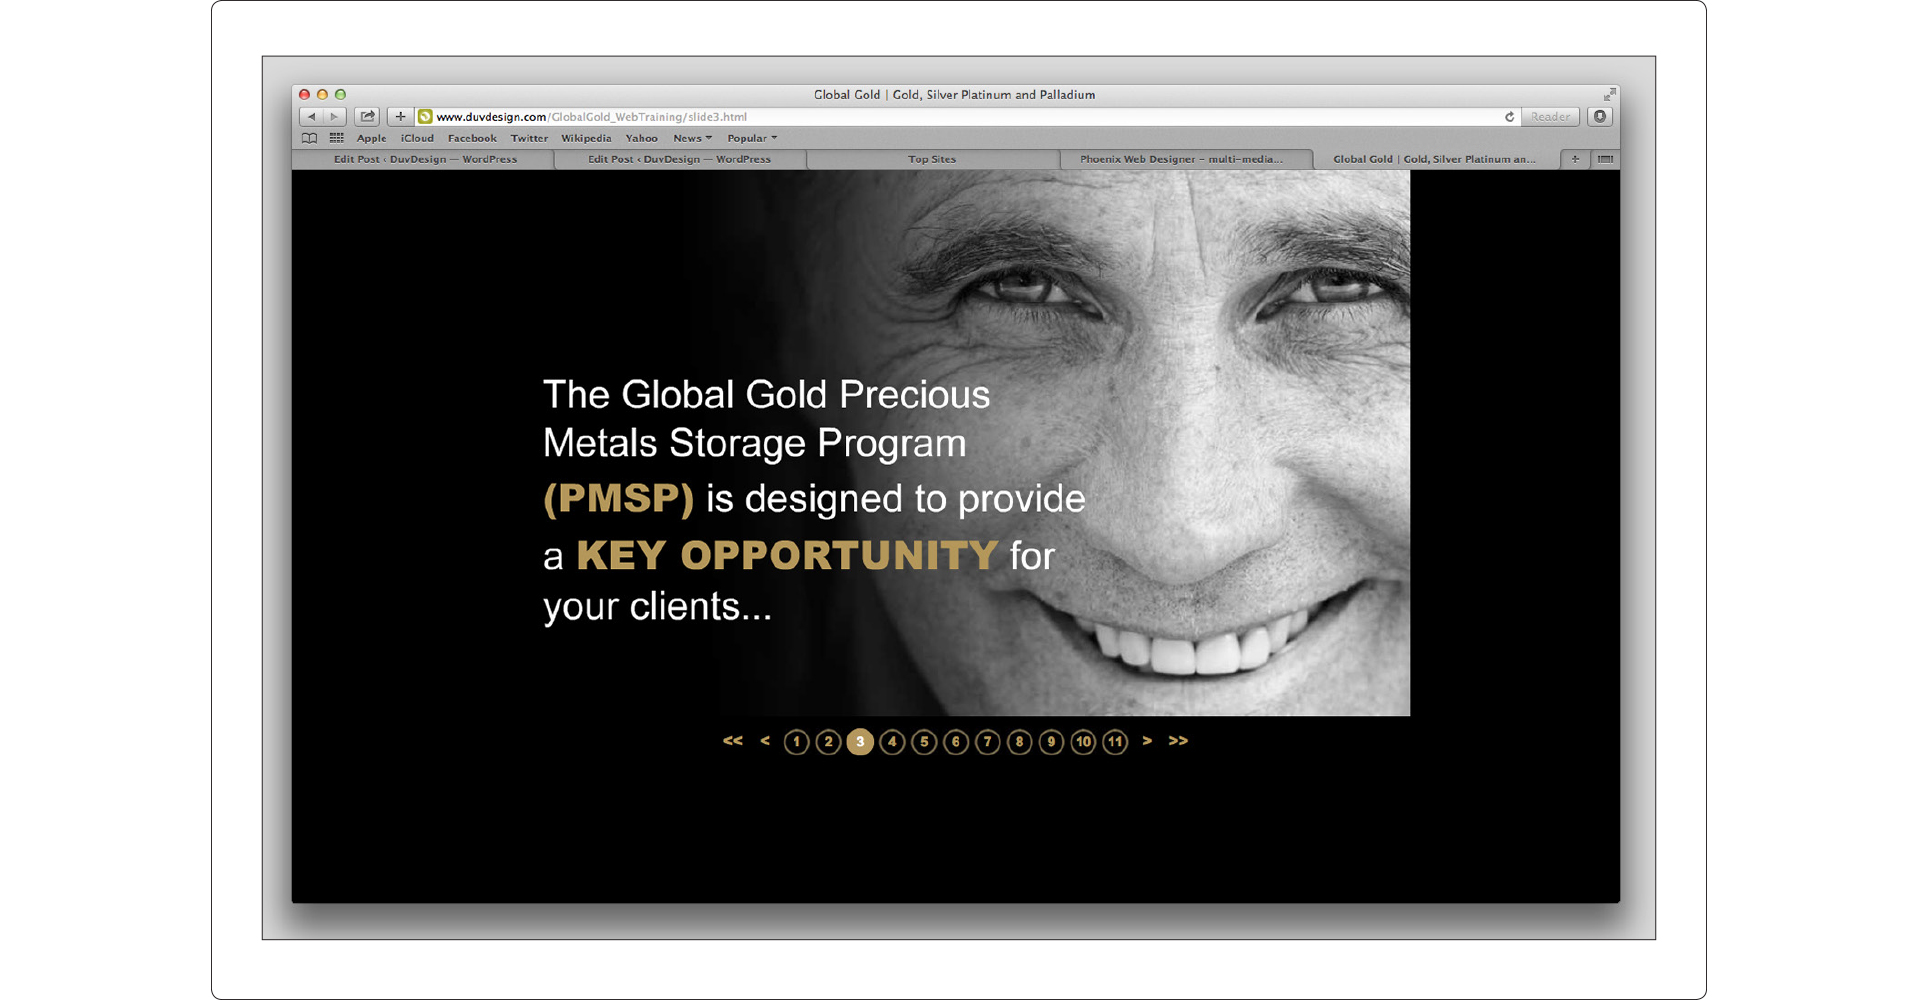 Global Gold Training Presentation